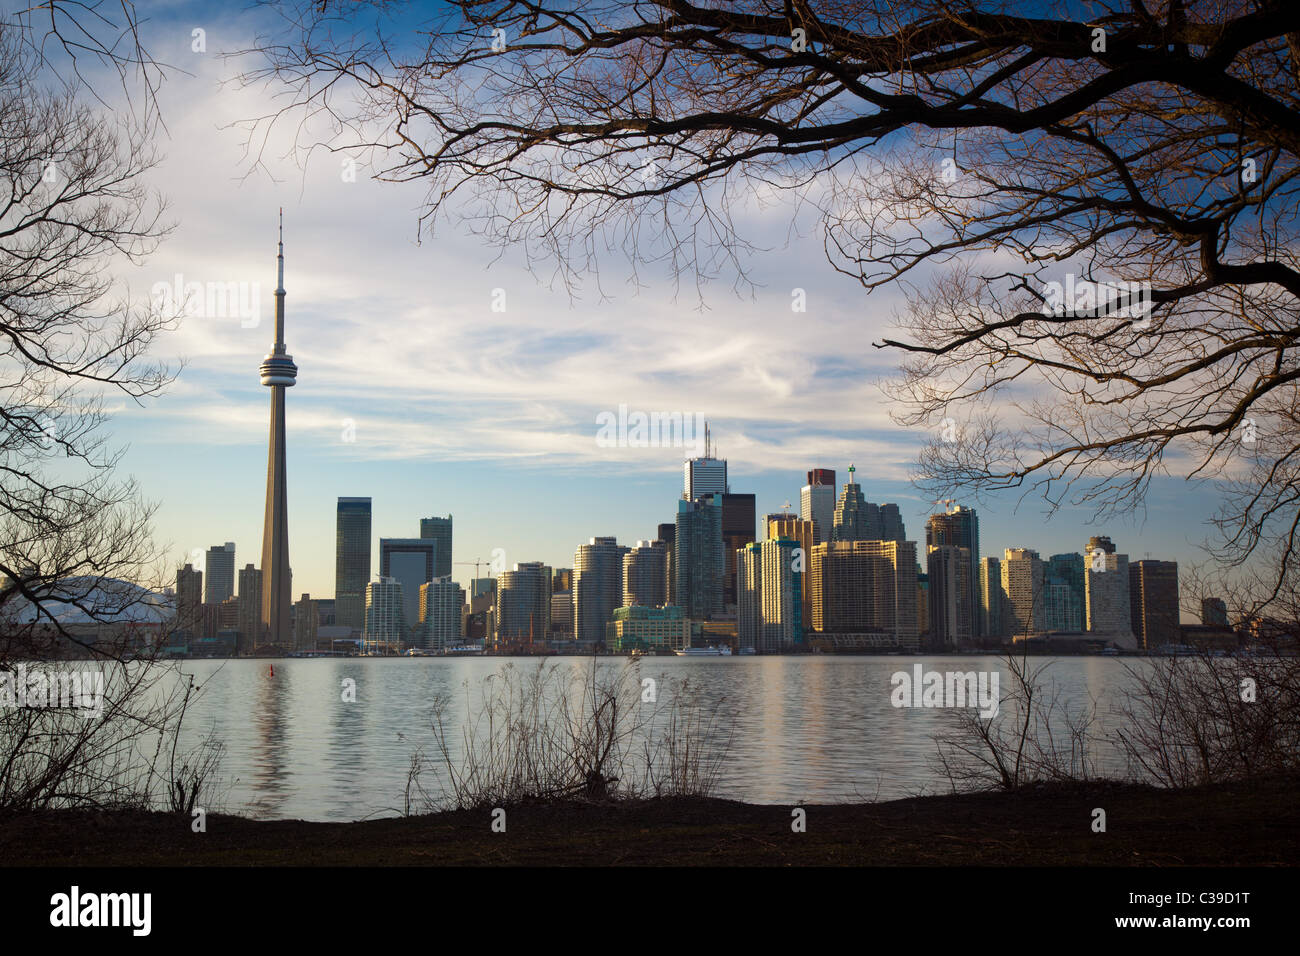 Downtown Toronto skyline, including CN Tower and Rogers Center, as seen in the late afternoon from Centre Island - Stock Image